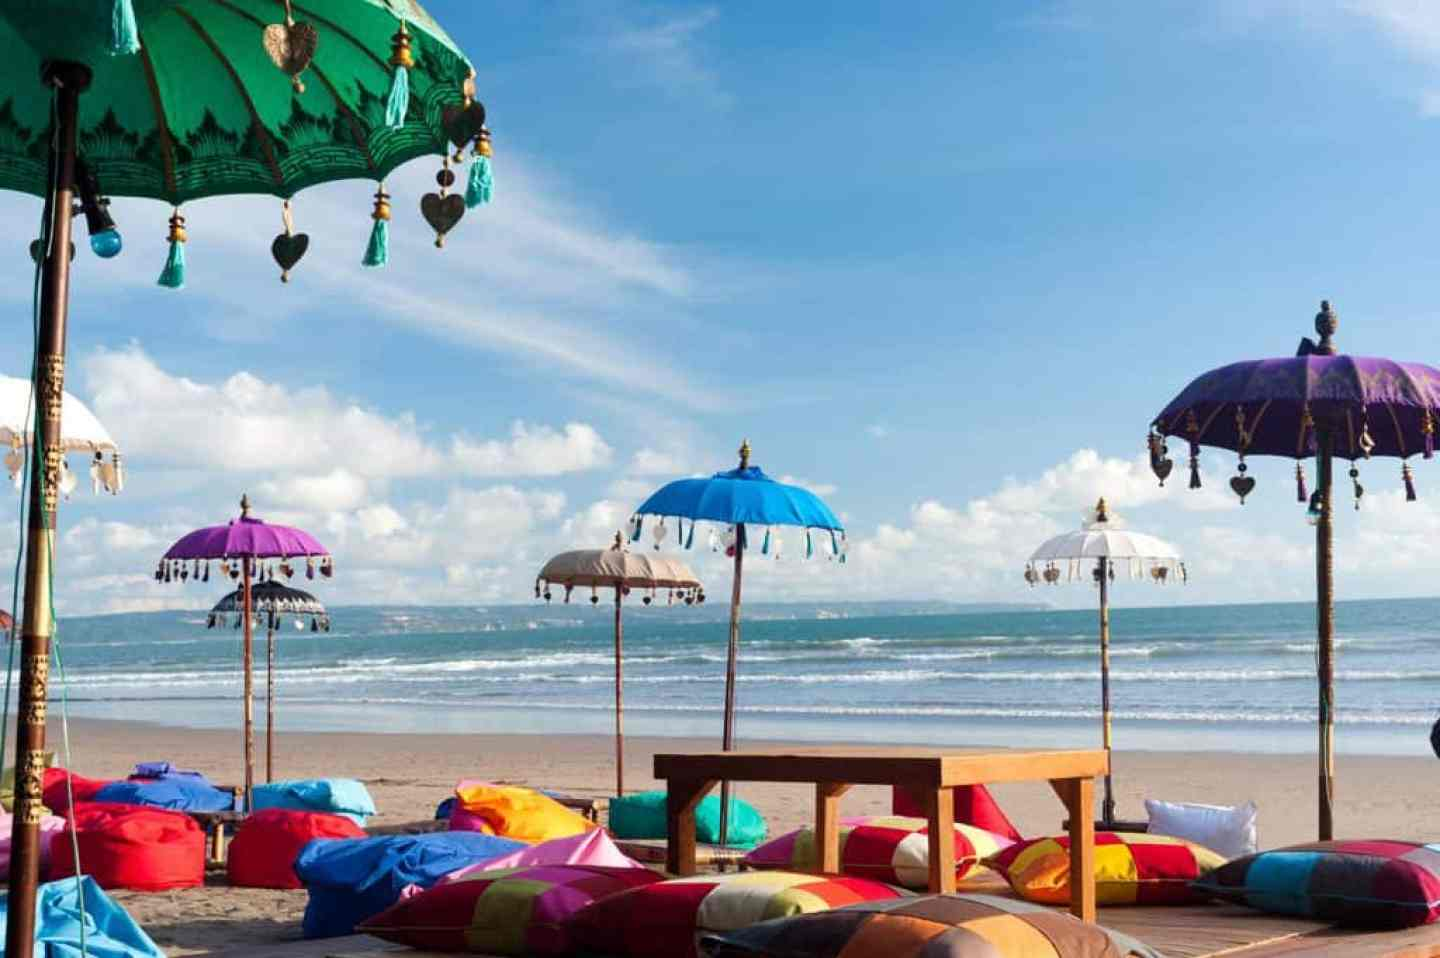 best places to stay in bali seminyak, best places to stay in seminyak bali